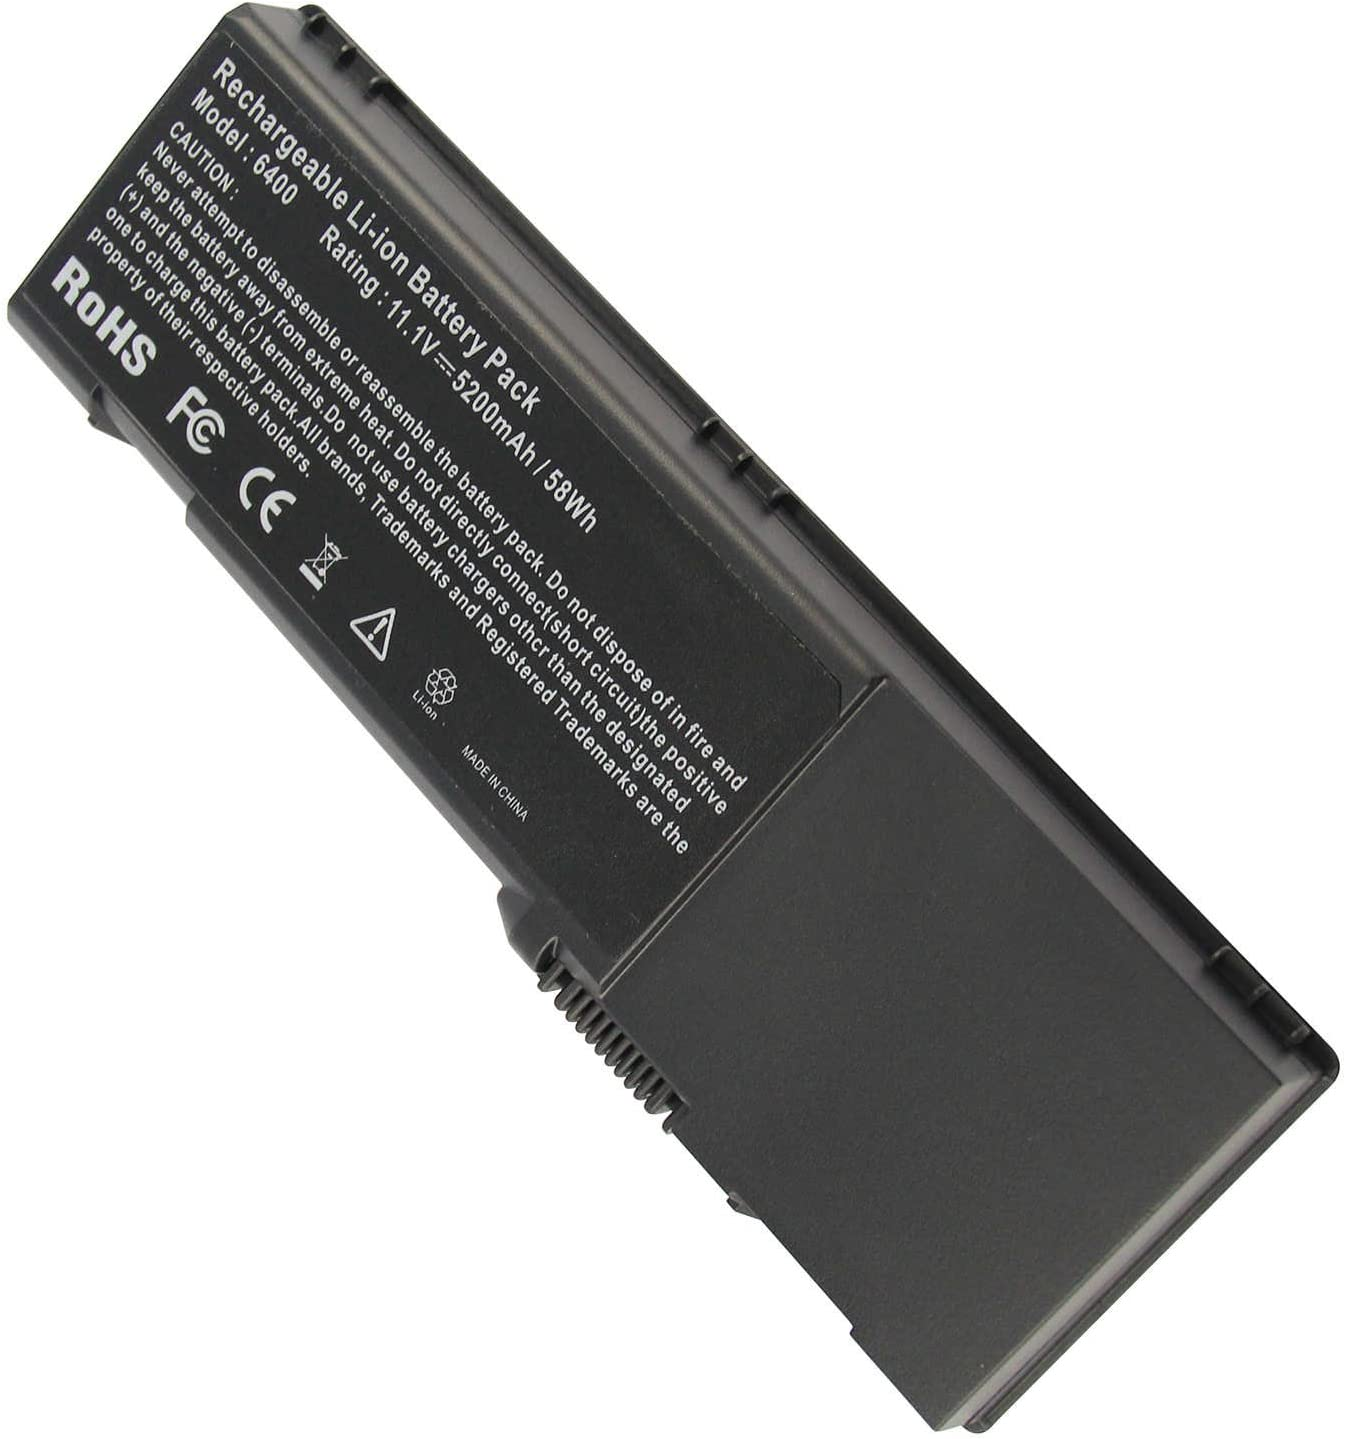 Fancy Buying Laptop Battery for Dell Vostro 1000 Latitude 131L, fits P/N BD41 CR174 D6400 GD761 HJ607 HK421 JN149 KD476 PD942 PD945 PD946 PR002 RD850 RD855 RD857 RD857B (6 Cells 11.1V 5200mAh)